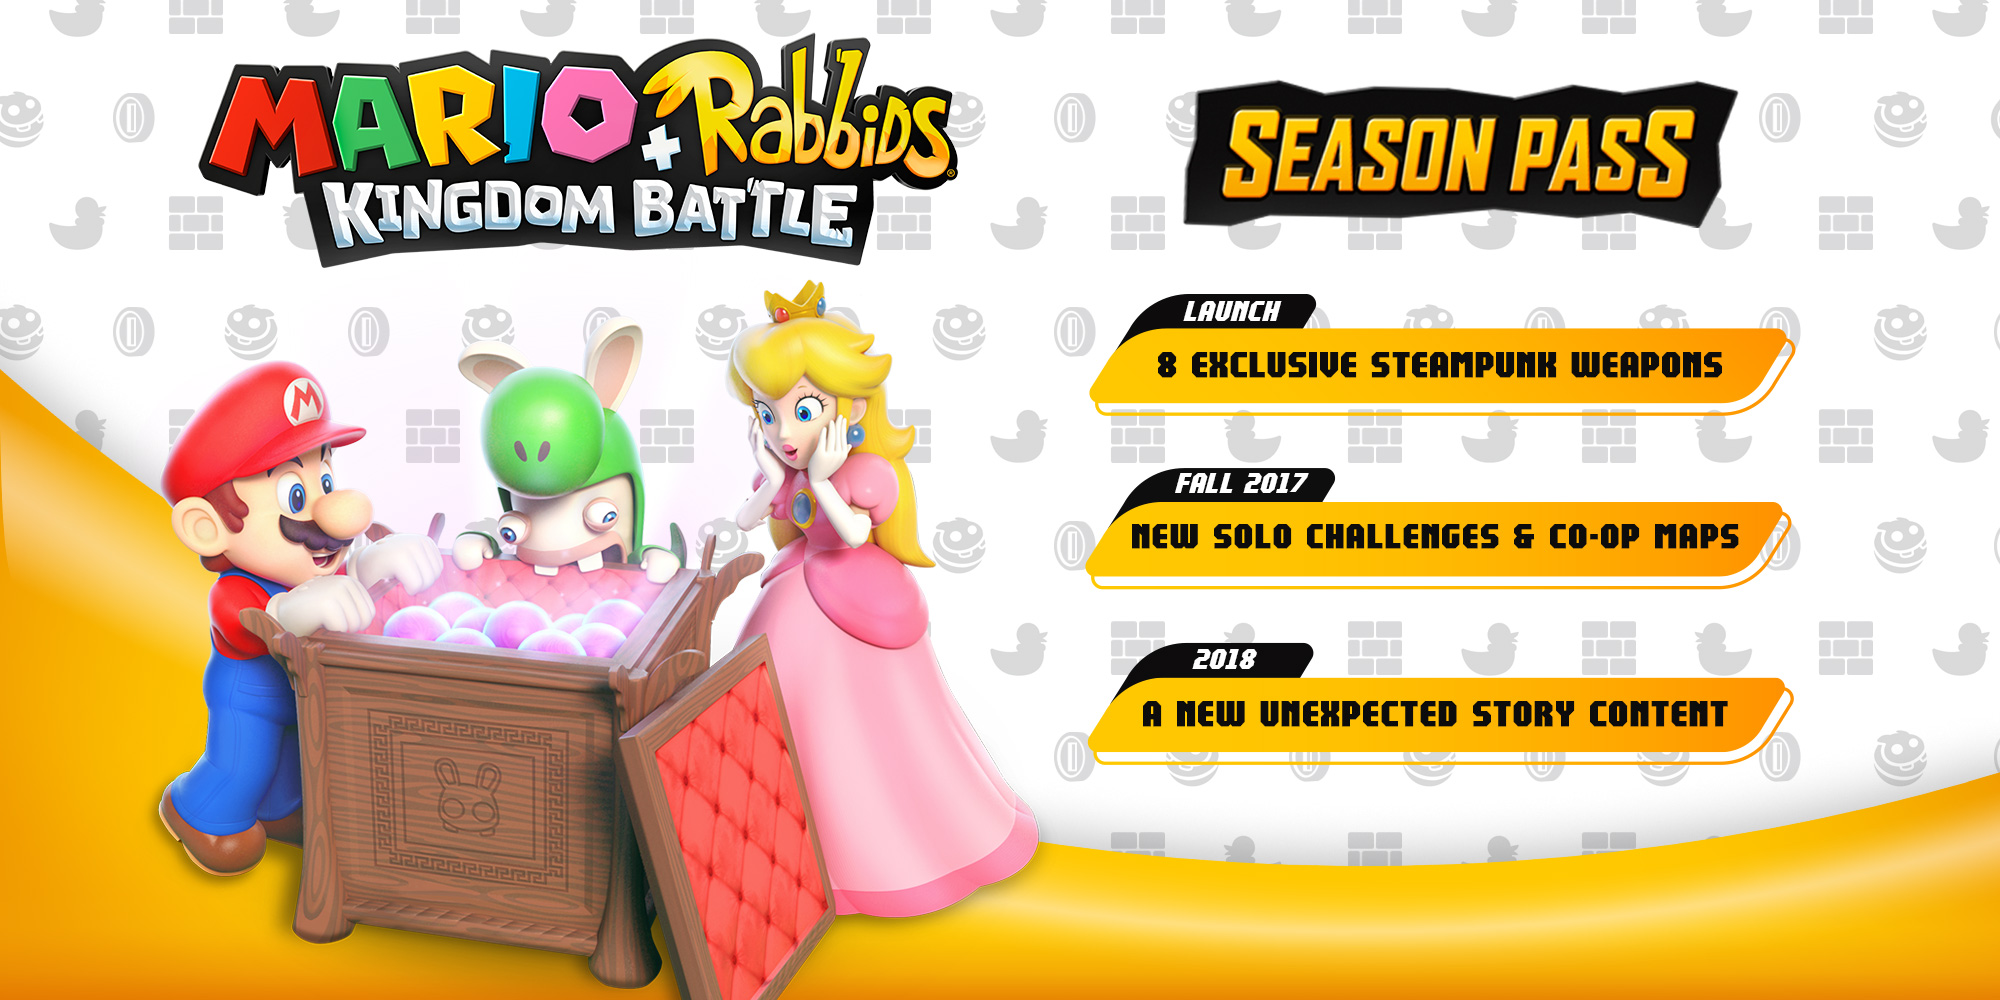 Season-Pass zu Mario + Rabbids: Kingdom Battle angekündigt